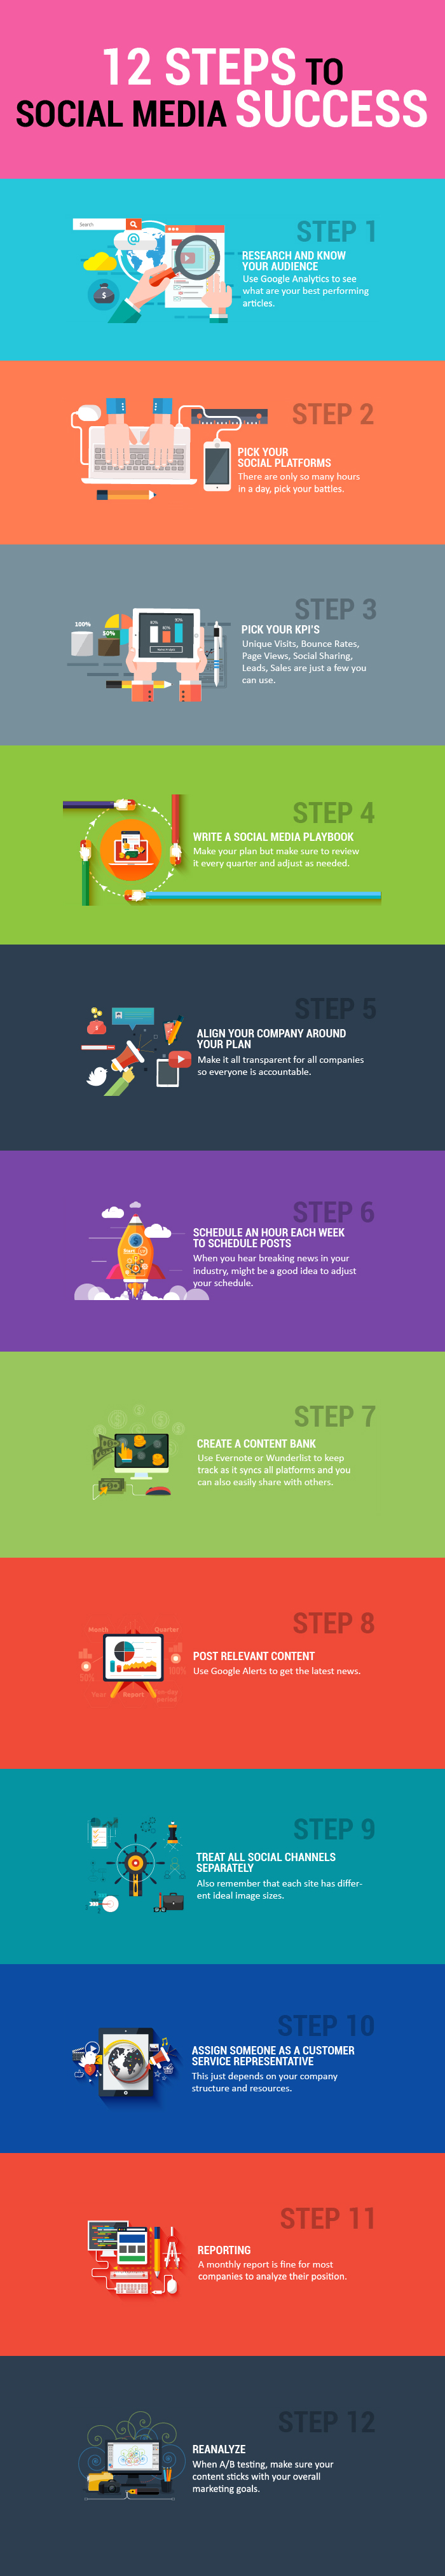 12 Steps to a Successful Social Media Marketing Strategy